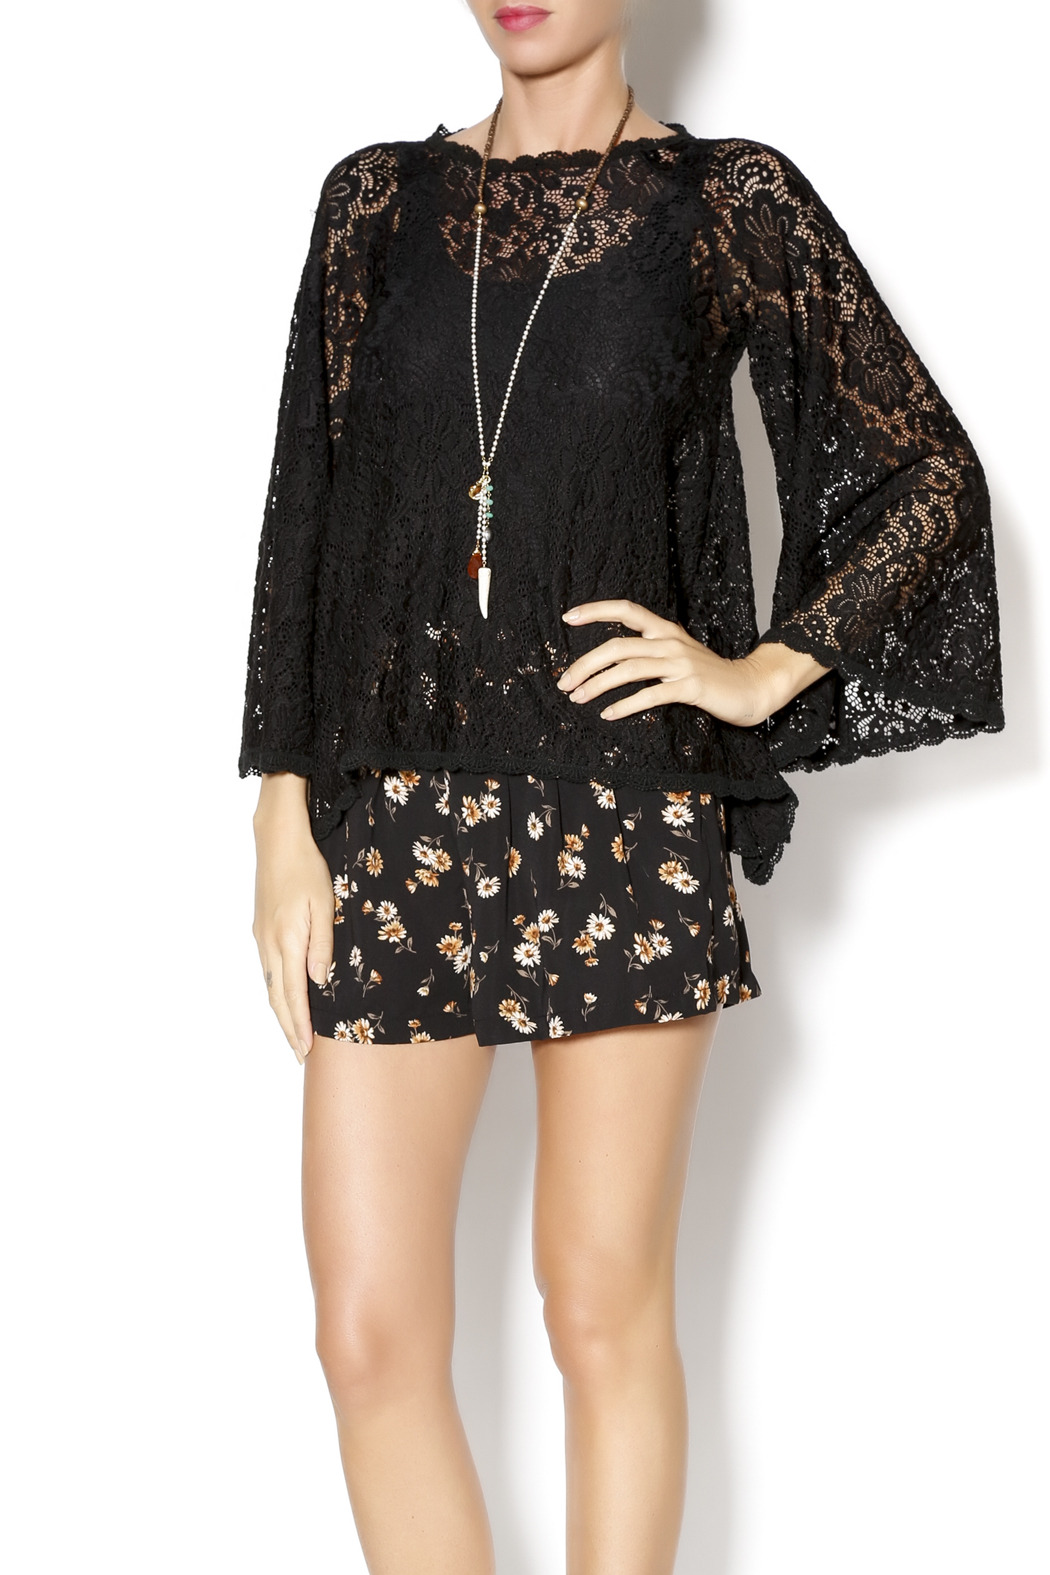 Gina Louise Lace Bell Sleeve Top - Main Image